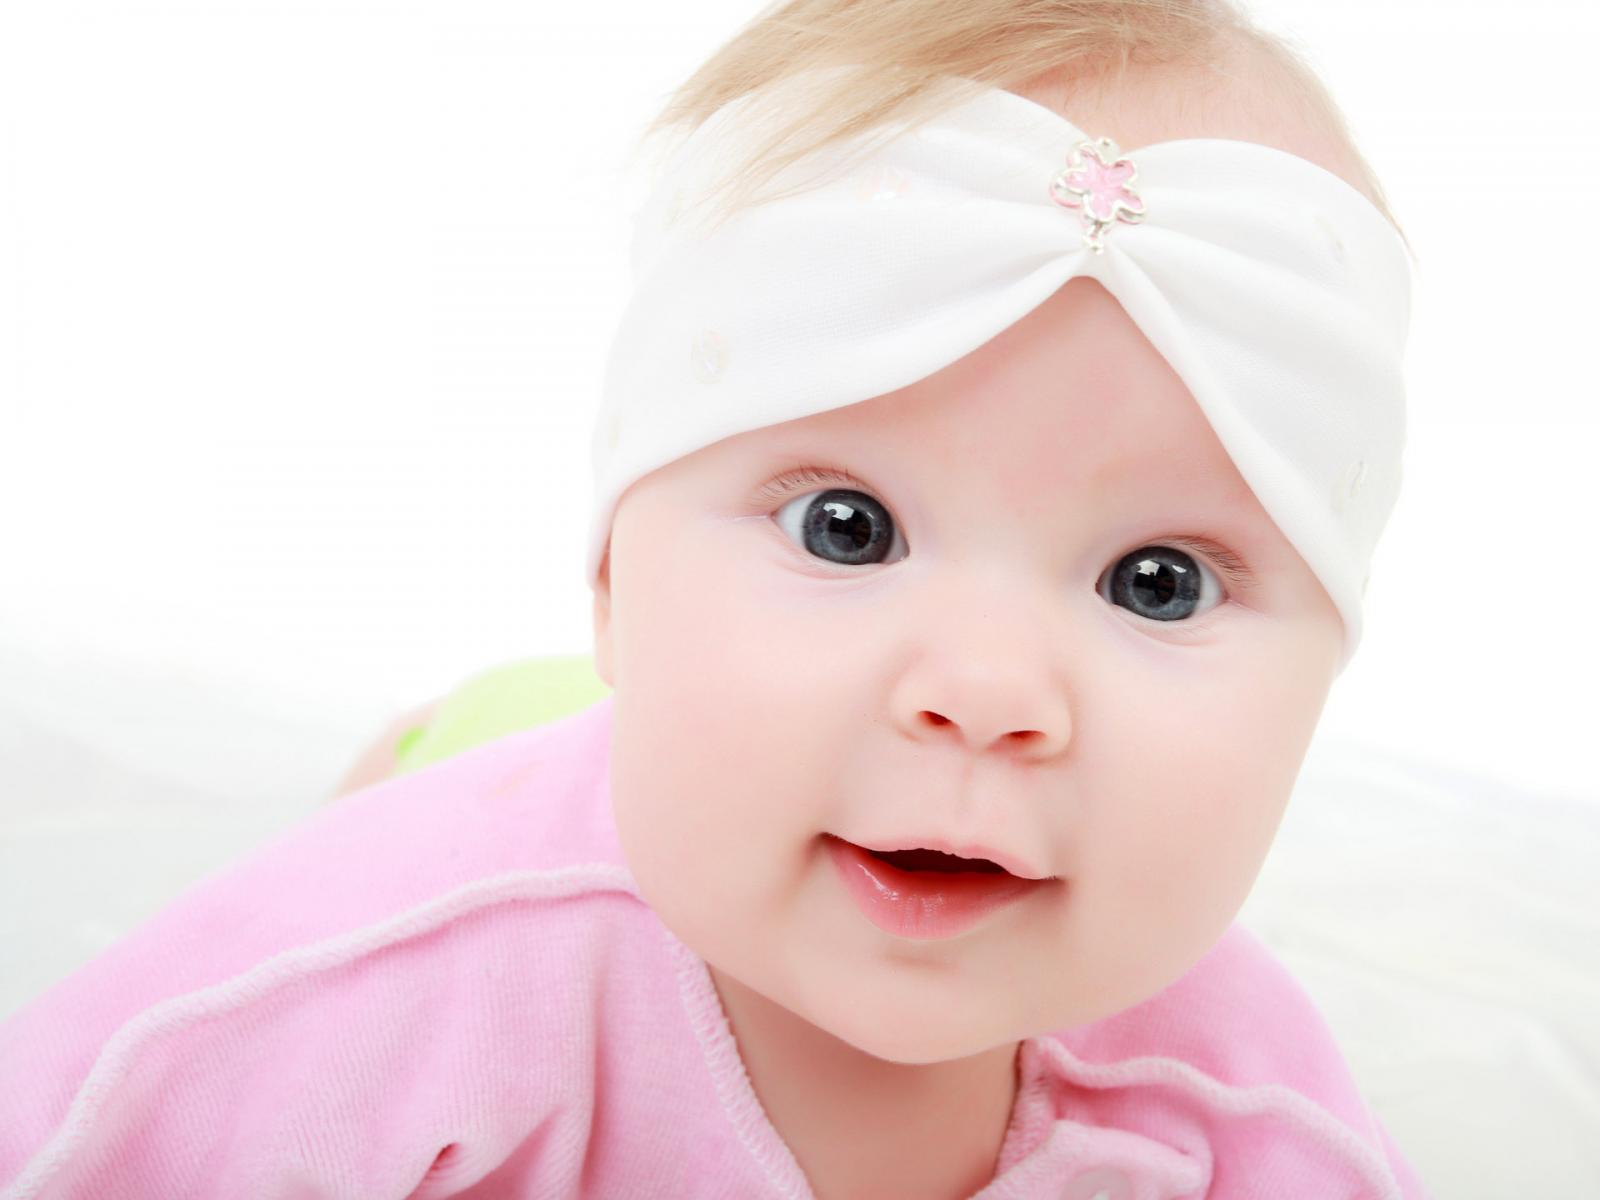 Baby Girls Wallpaper For Free Download X Very Cute Pictures Ajilbab Wallpaper